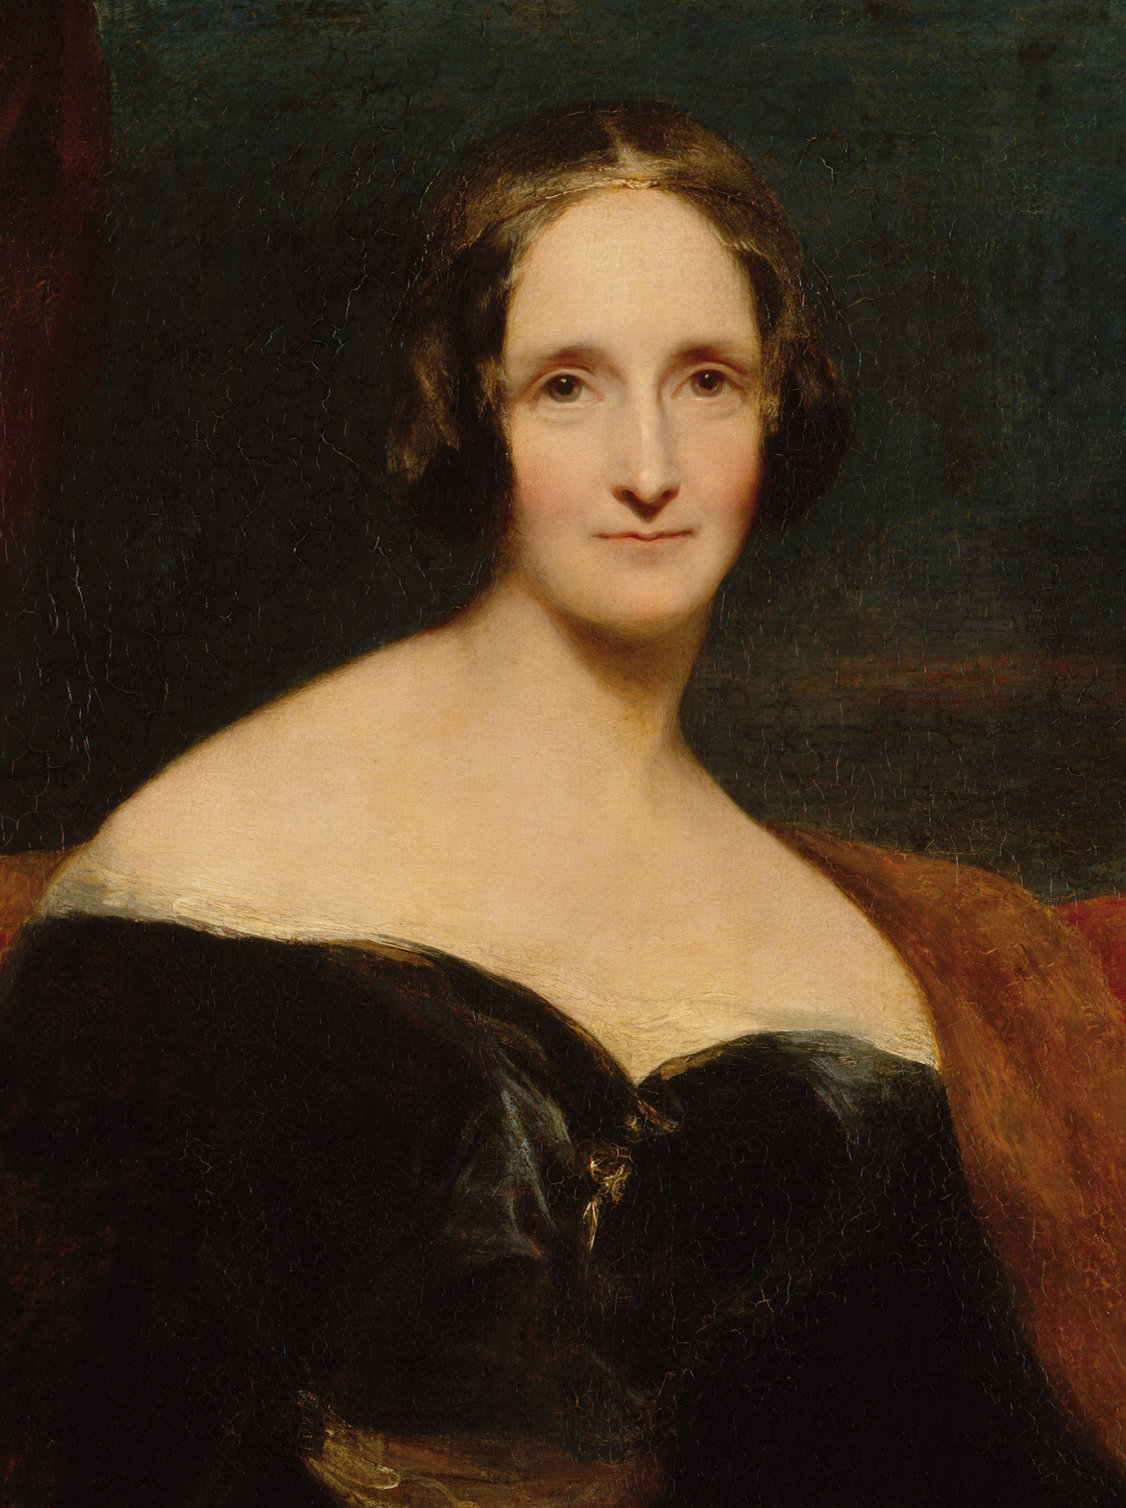 Mary Wollstonecraft Shelley par Richard Rothwell. Huile sur toile